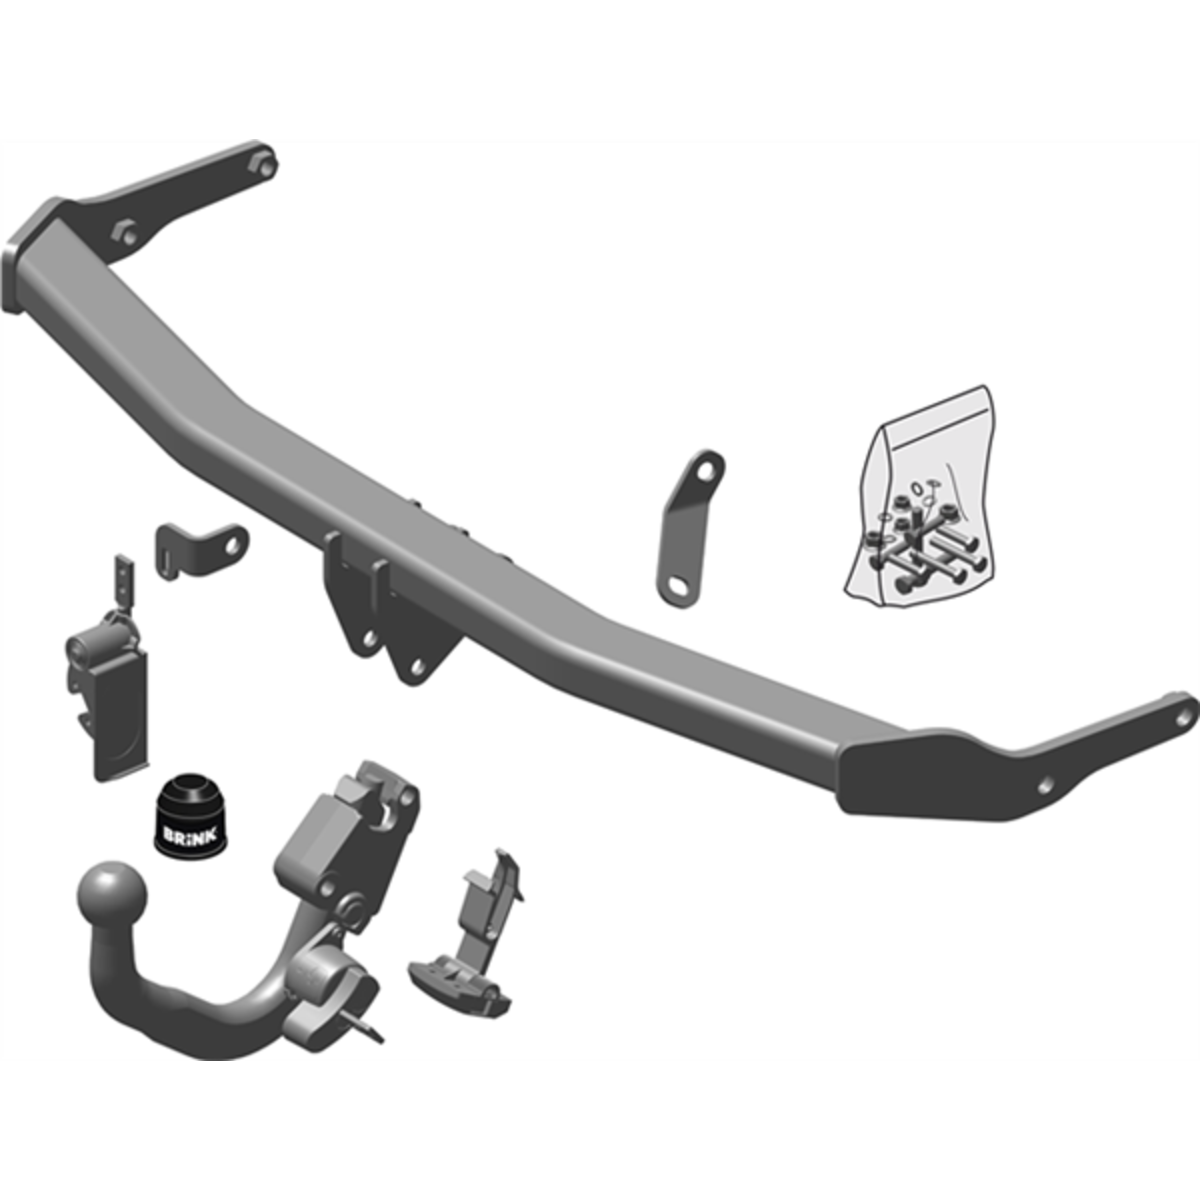 Brink Towbar to suit Volkswagen Polo (09/2017 - on), Seat Ibiza (01/2017 - on)